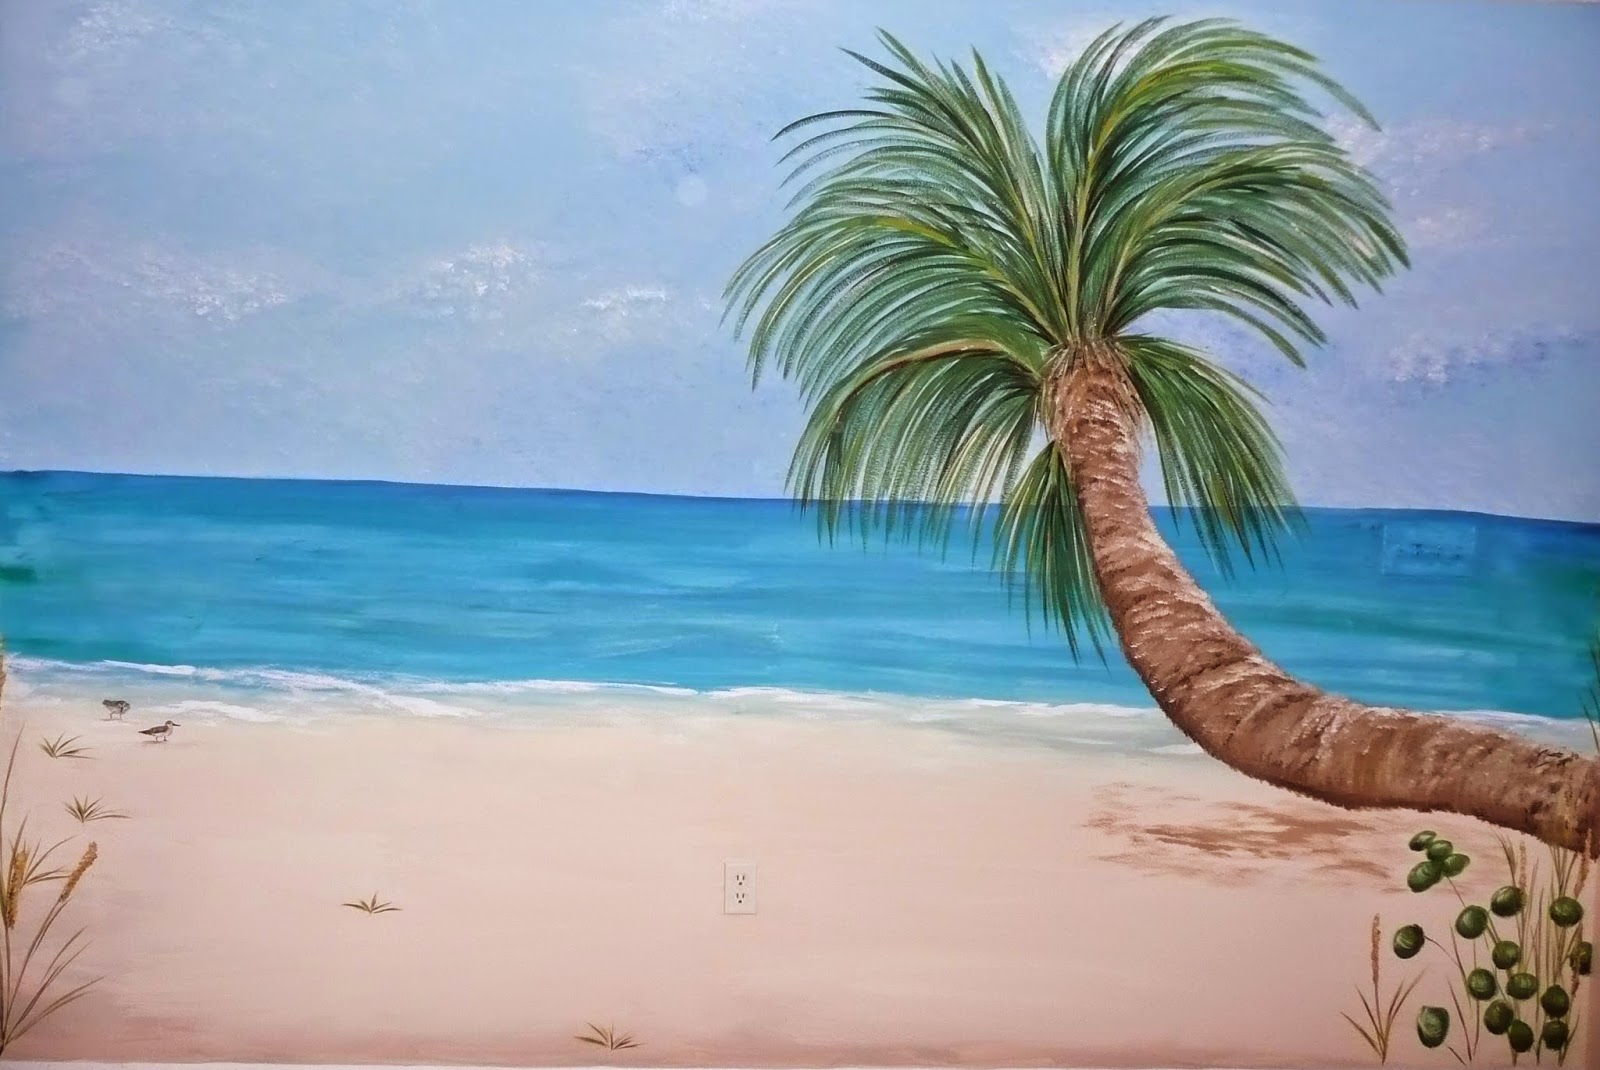 Wall murals beach scenes gallery home wall decoration ideas beach scene wall murals images home wall decoration ideas mural painting welcome to paradise swan studios amipublicfo Images